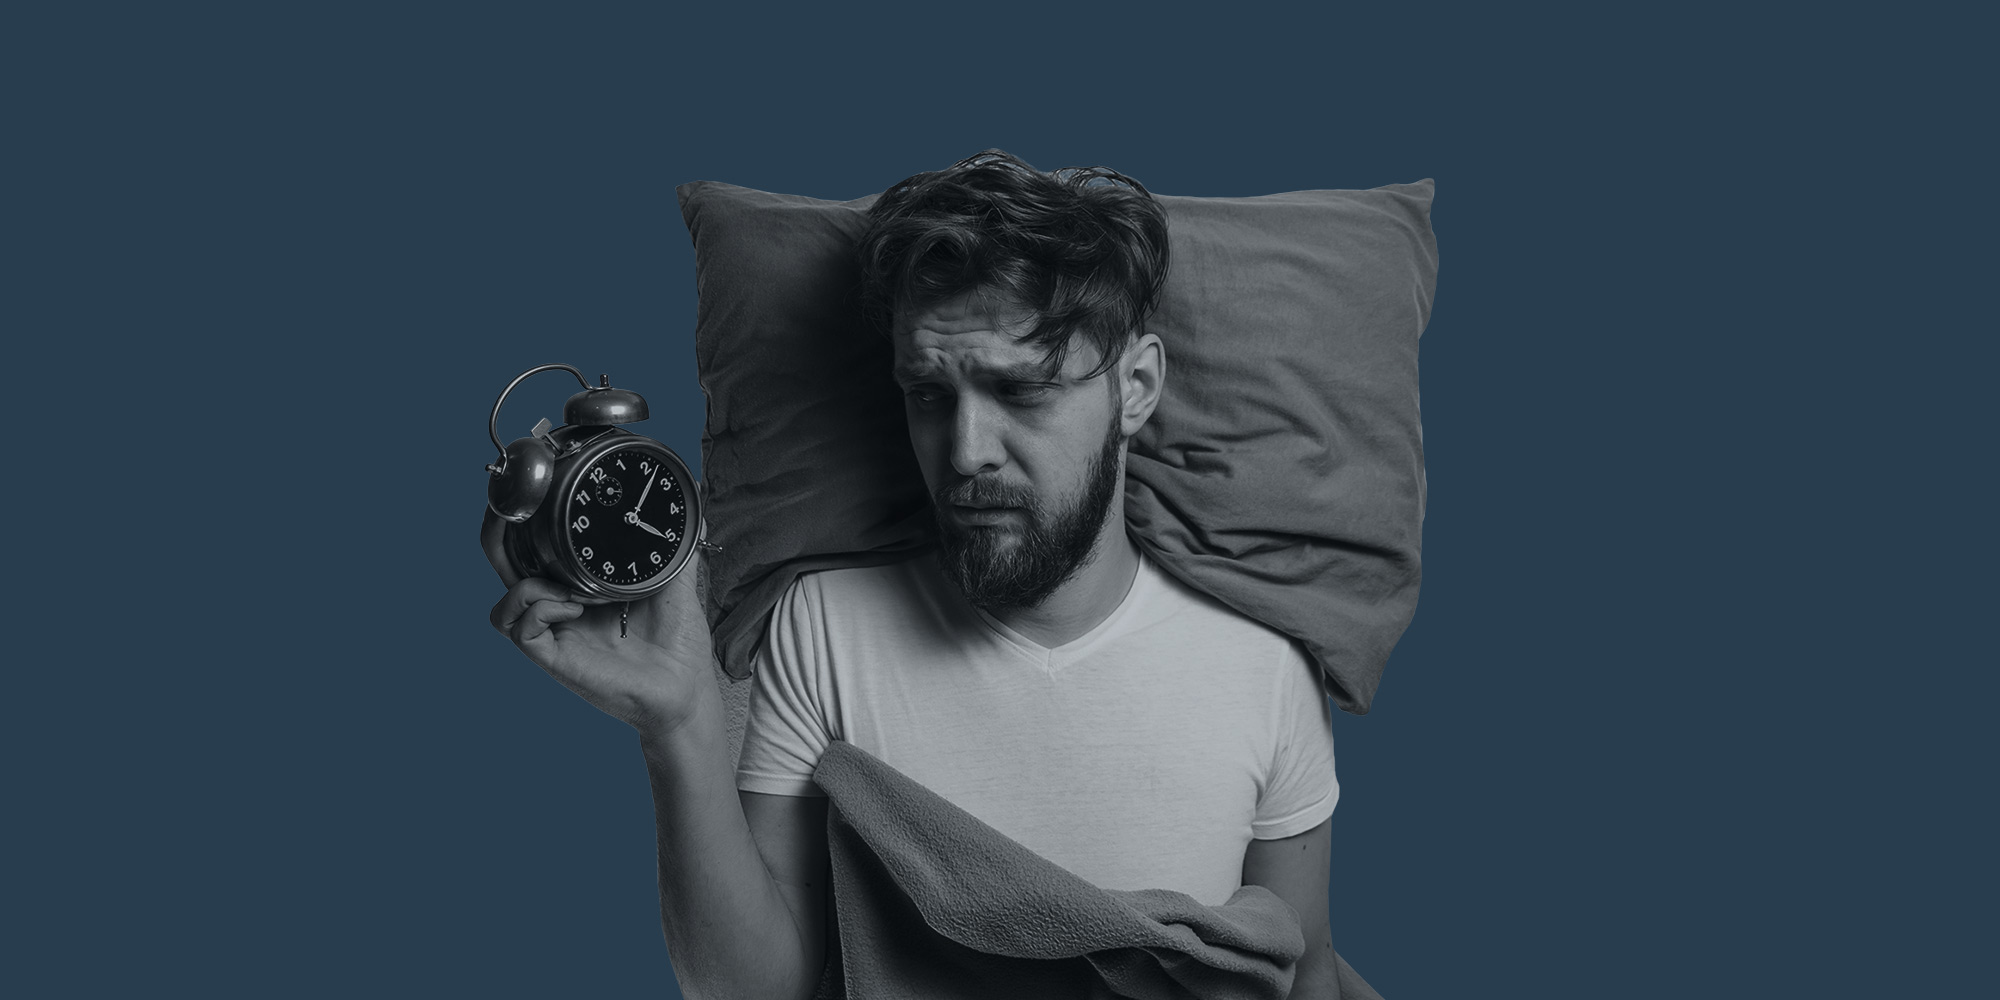 Does alcohol cause insomnia?